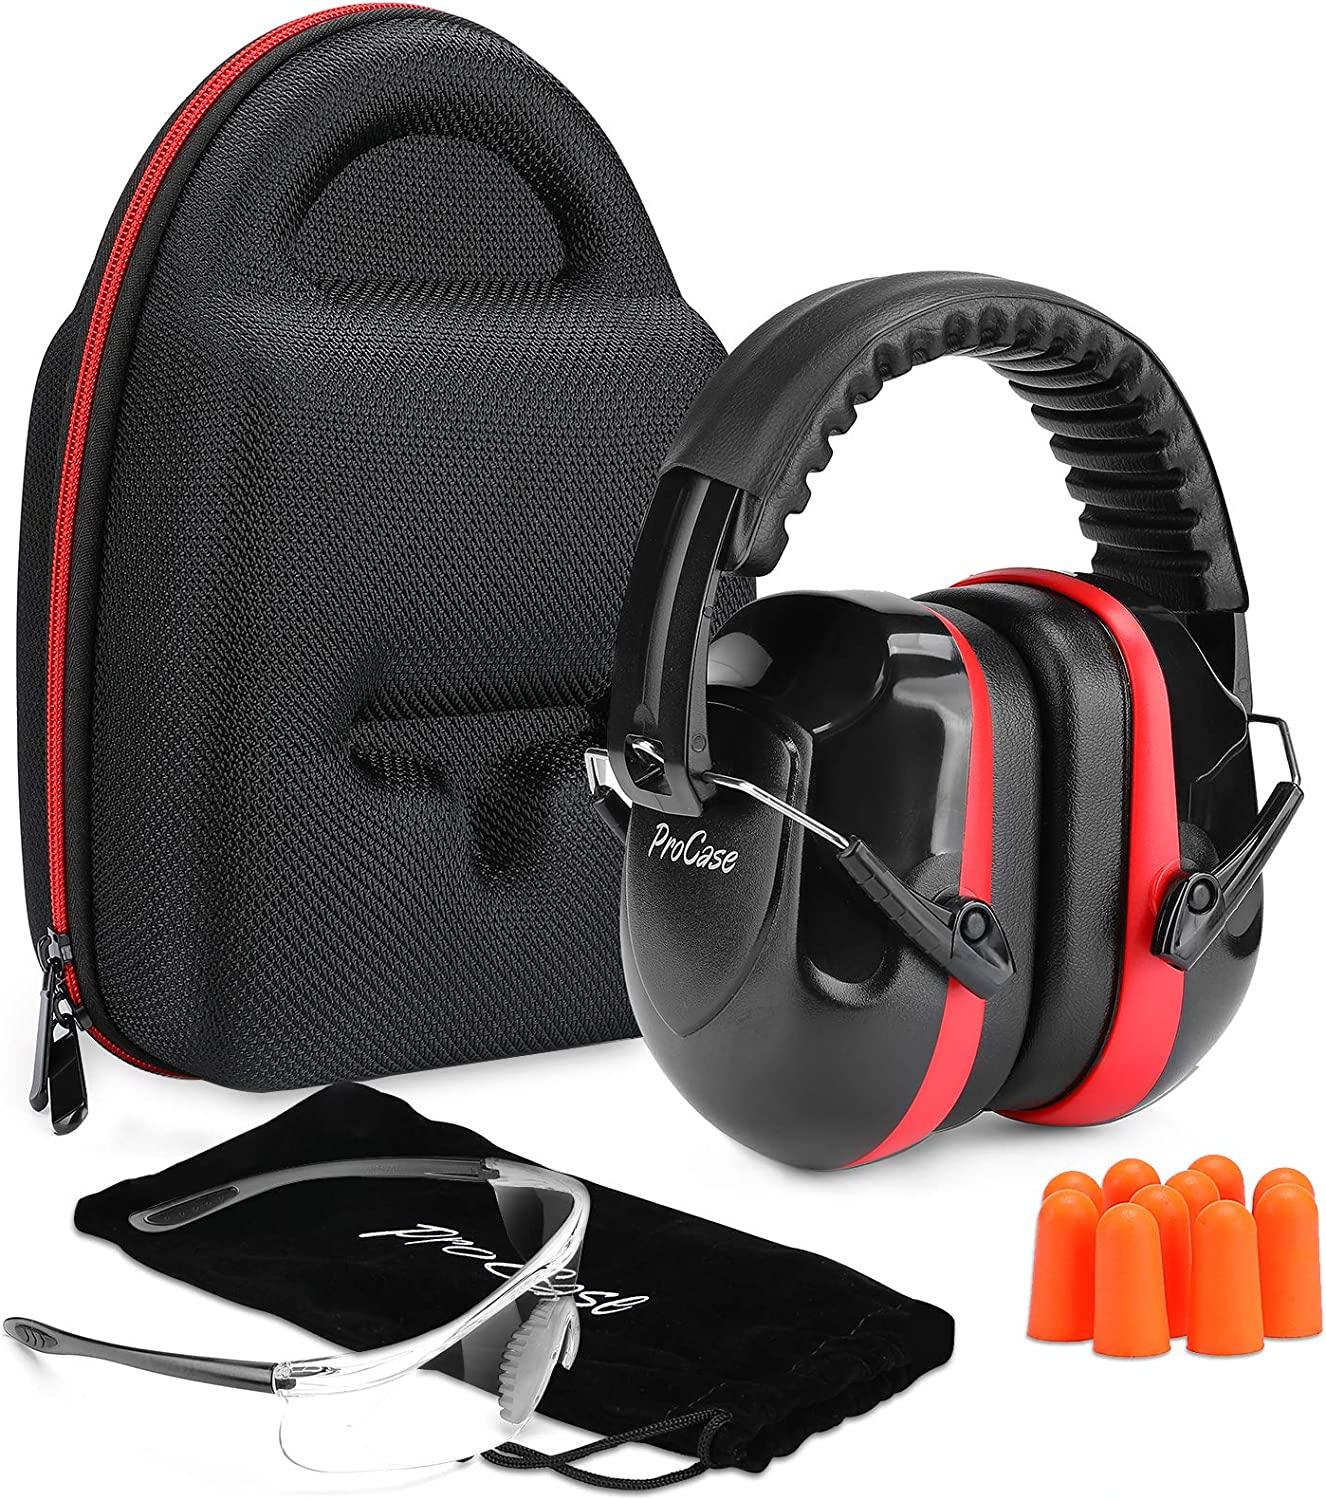 specialty shop ProCase Shooting Ear Surprise price Protection Earmuffs and Glasses Safety Gun